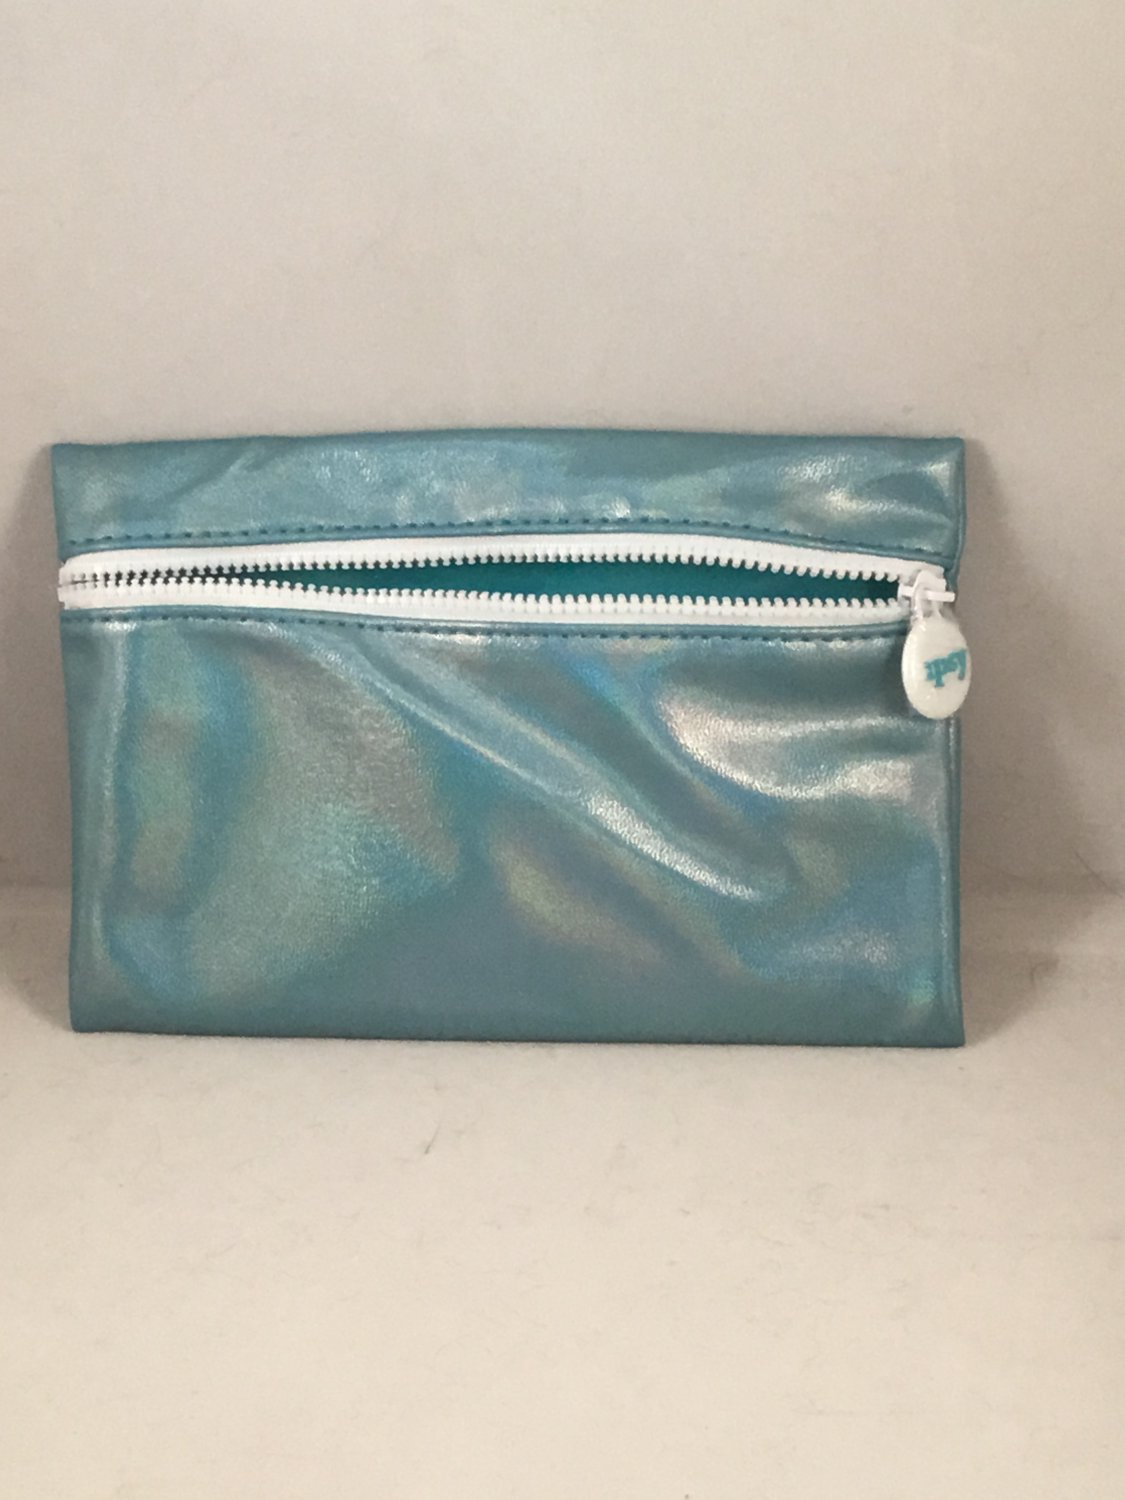 Ipsy MyGlam Glam Bag July 2018 Nothing But Water Cosmetic case purse Holographic Aqua